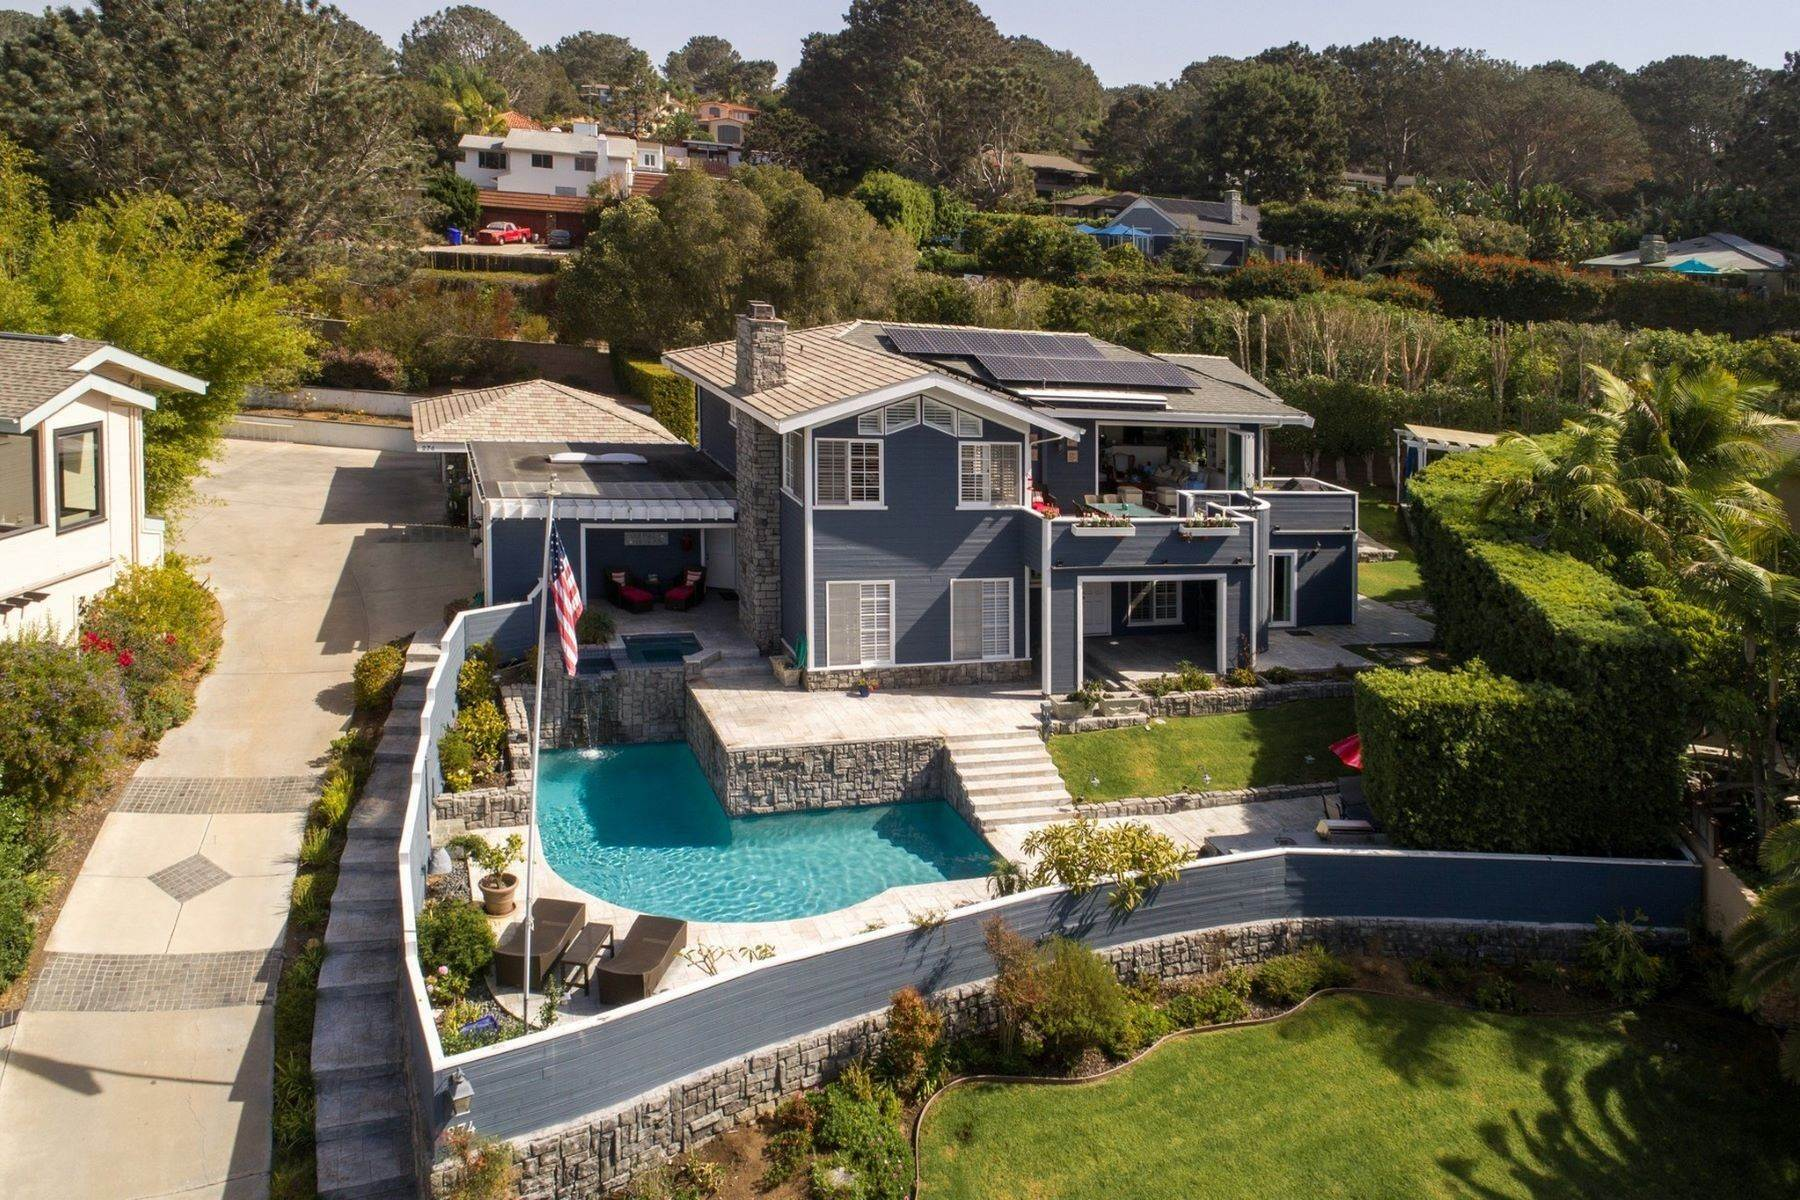 Single Family Homes for Sale at 274 Stratford Park Circle, Del Mar, CA 92014 274 Stratford Park Circle Del Mar, California 92014 United States